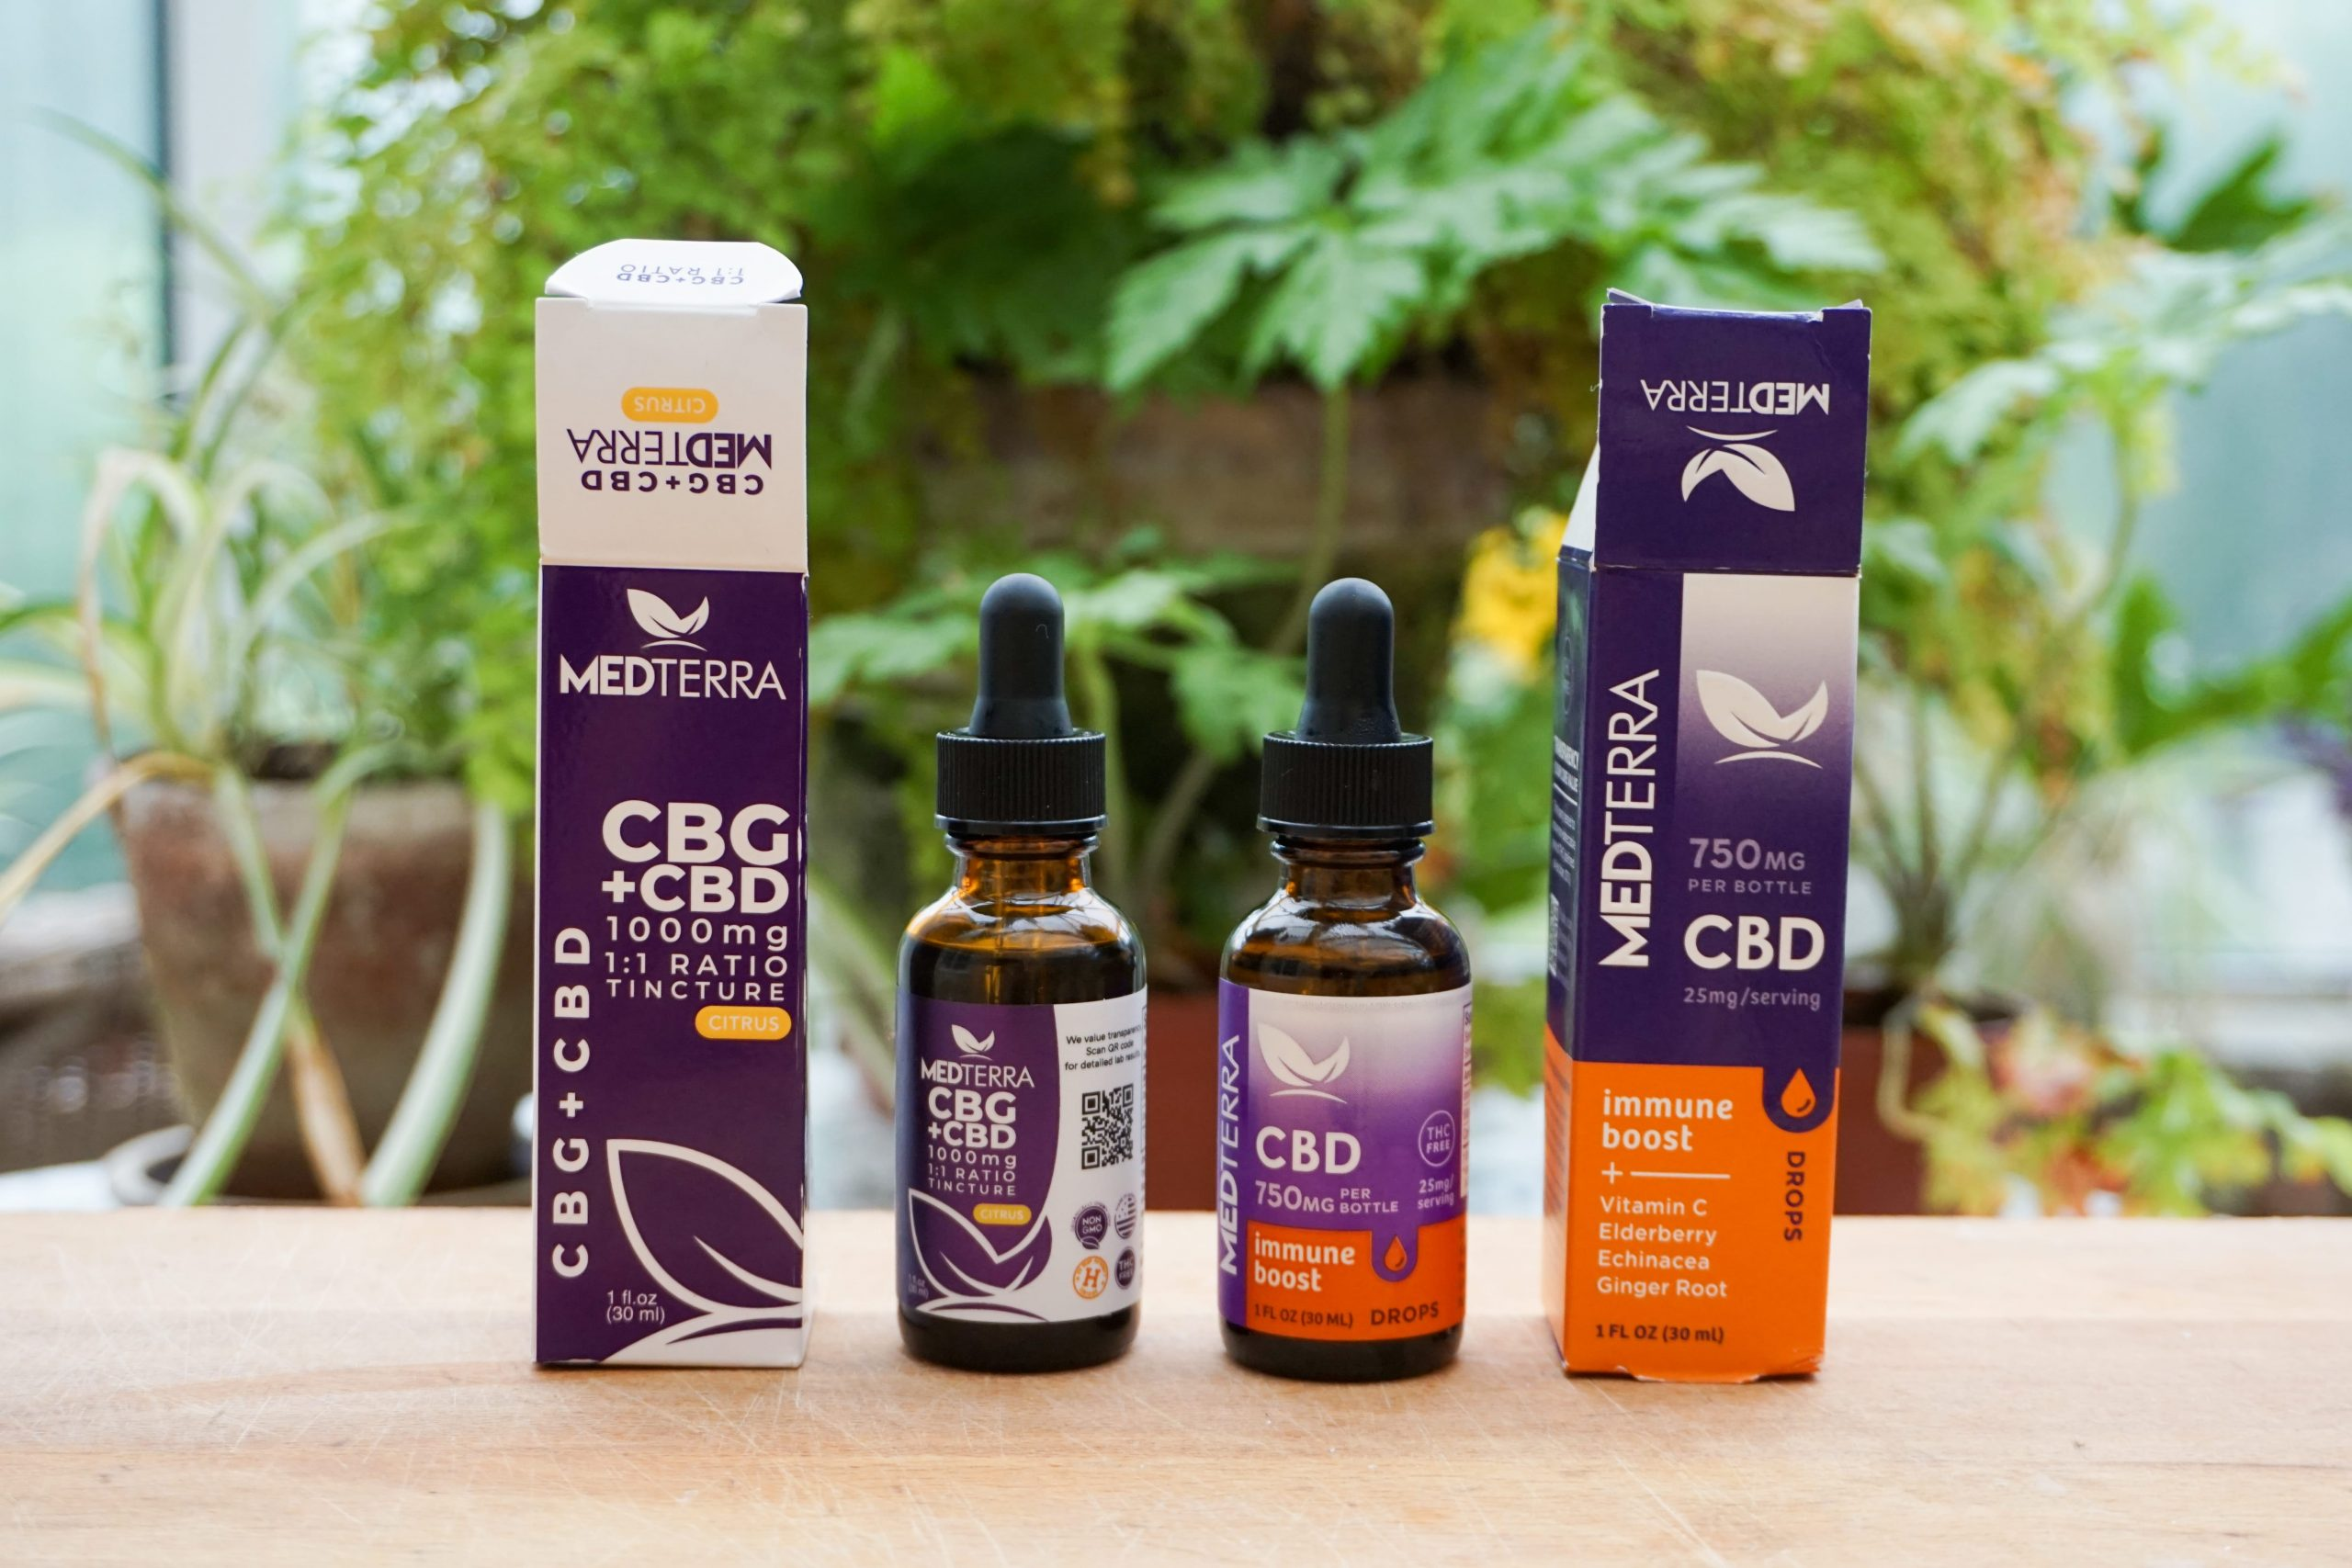 Medterra CBD Oil review and coupons 2021